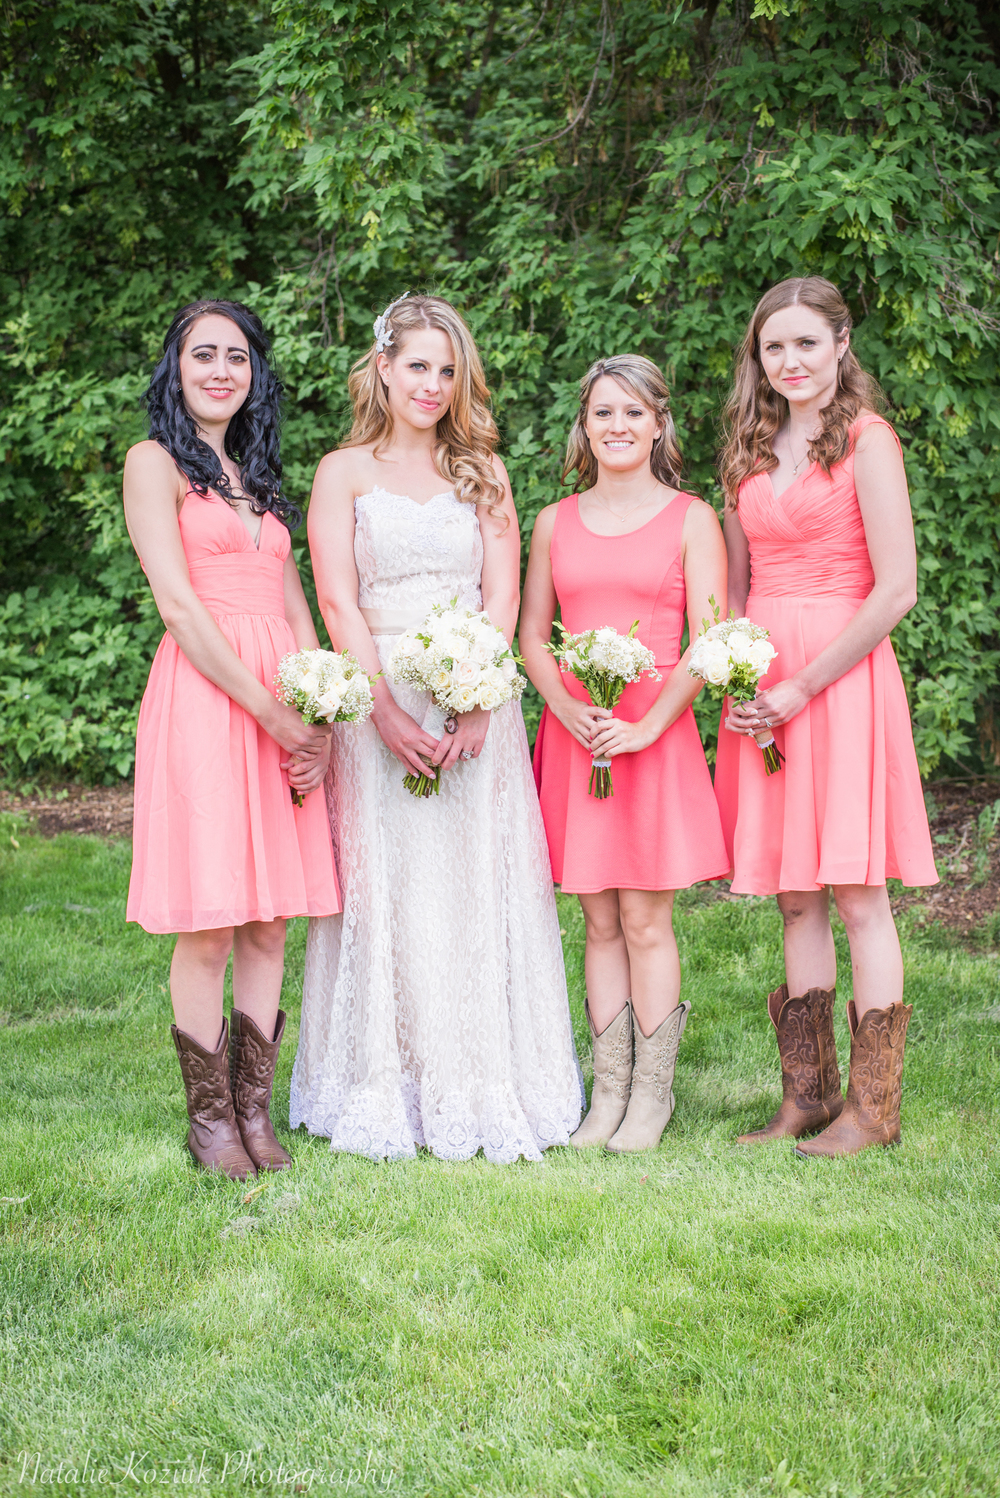 Natalie Koziuk Photography | Boise wedding photographer | bridesmaids | Star, ID | Bride Groom | nkoziukphotography.com